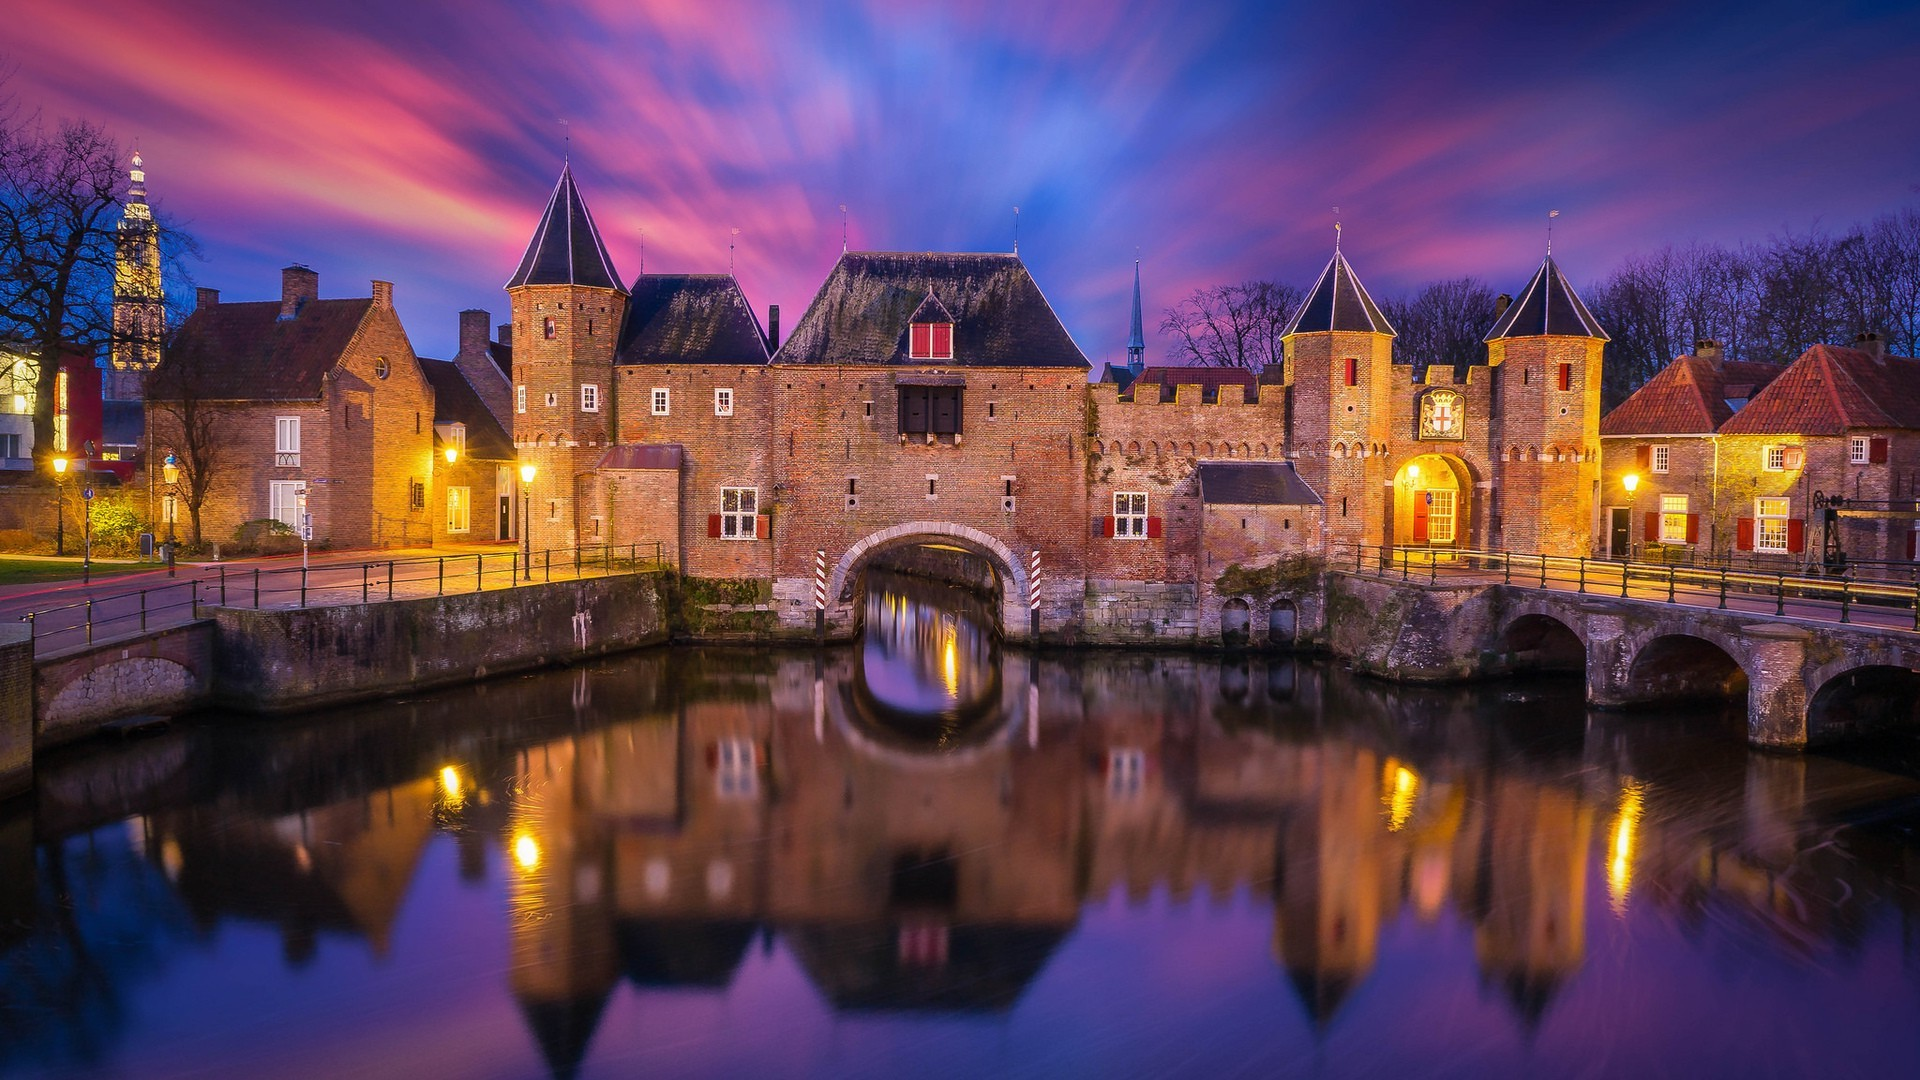 1920x1080 nature, Landscape, Architecture, Castle, Clouds, Water, Reflection, Long  Exposure, Lights, Tower, Sunset, Bridge, Netherlands, Europe Wallpapers HD  ...